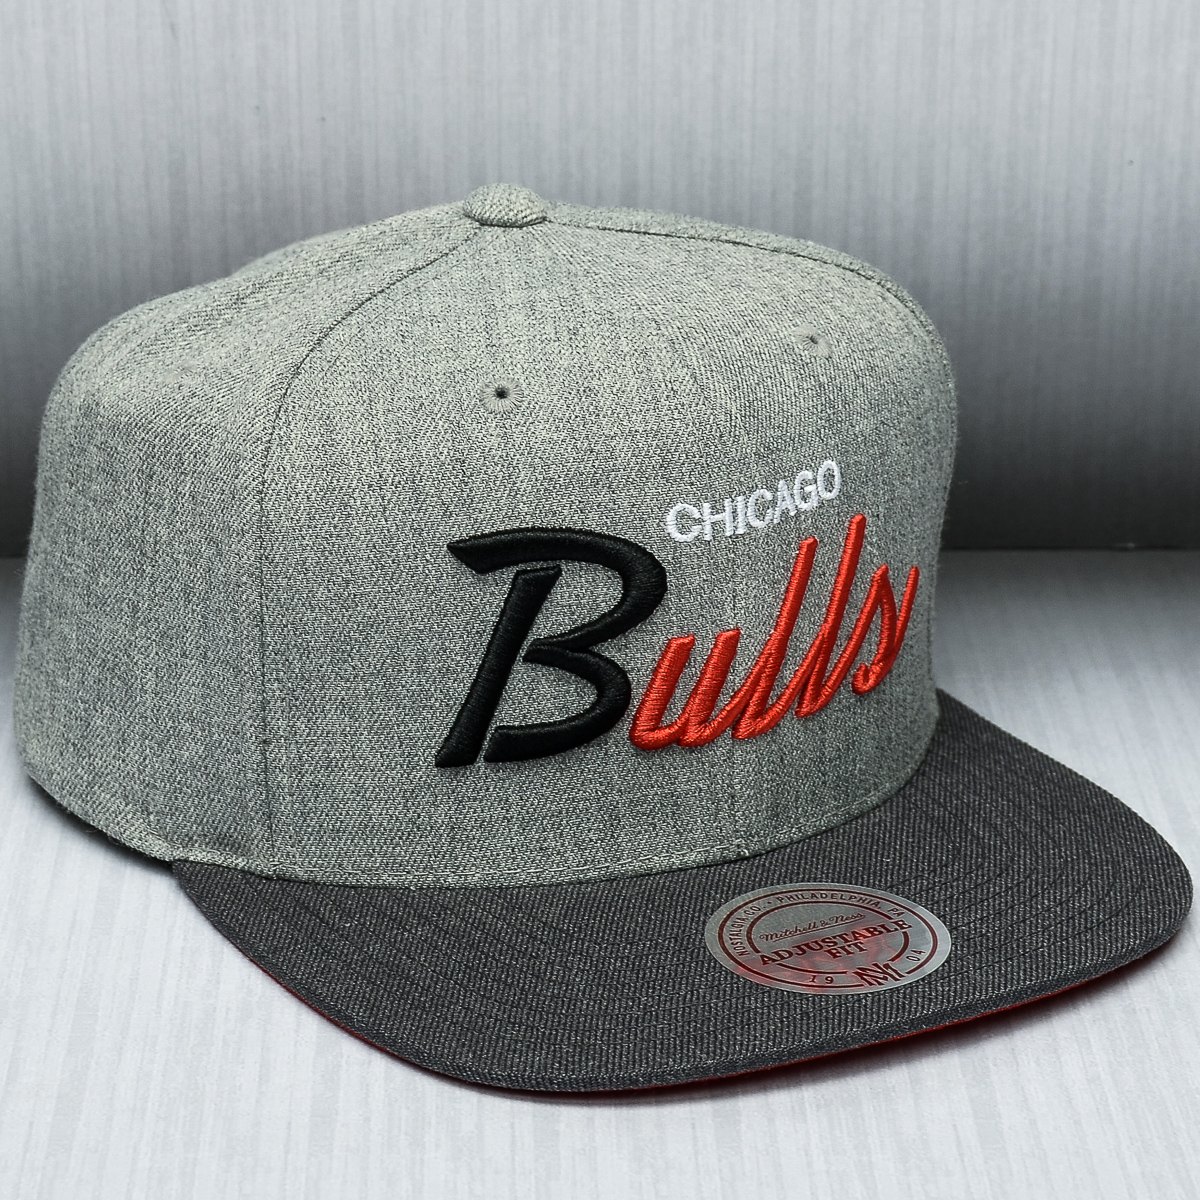 the latest c27b9 c0497 Mitchell   Ness NBA Chicago Bulls TRI POP SPECIAL SCRIPT Snapback Cap - NBA  Shop Chicago Bulls Merchandise - Superfanas.lt